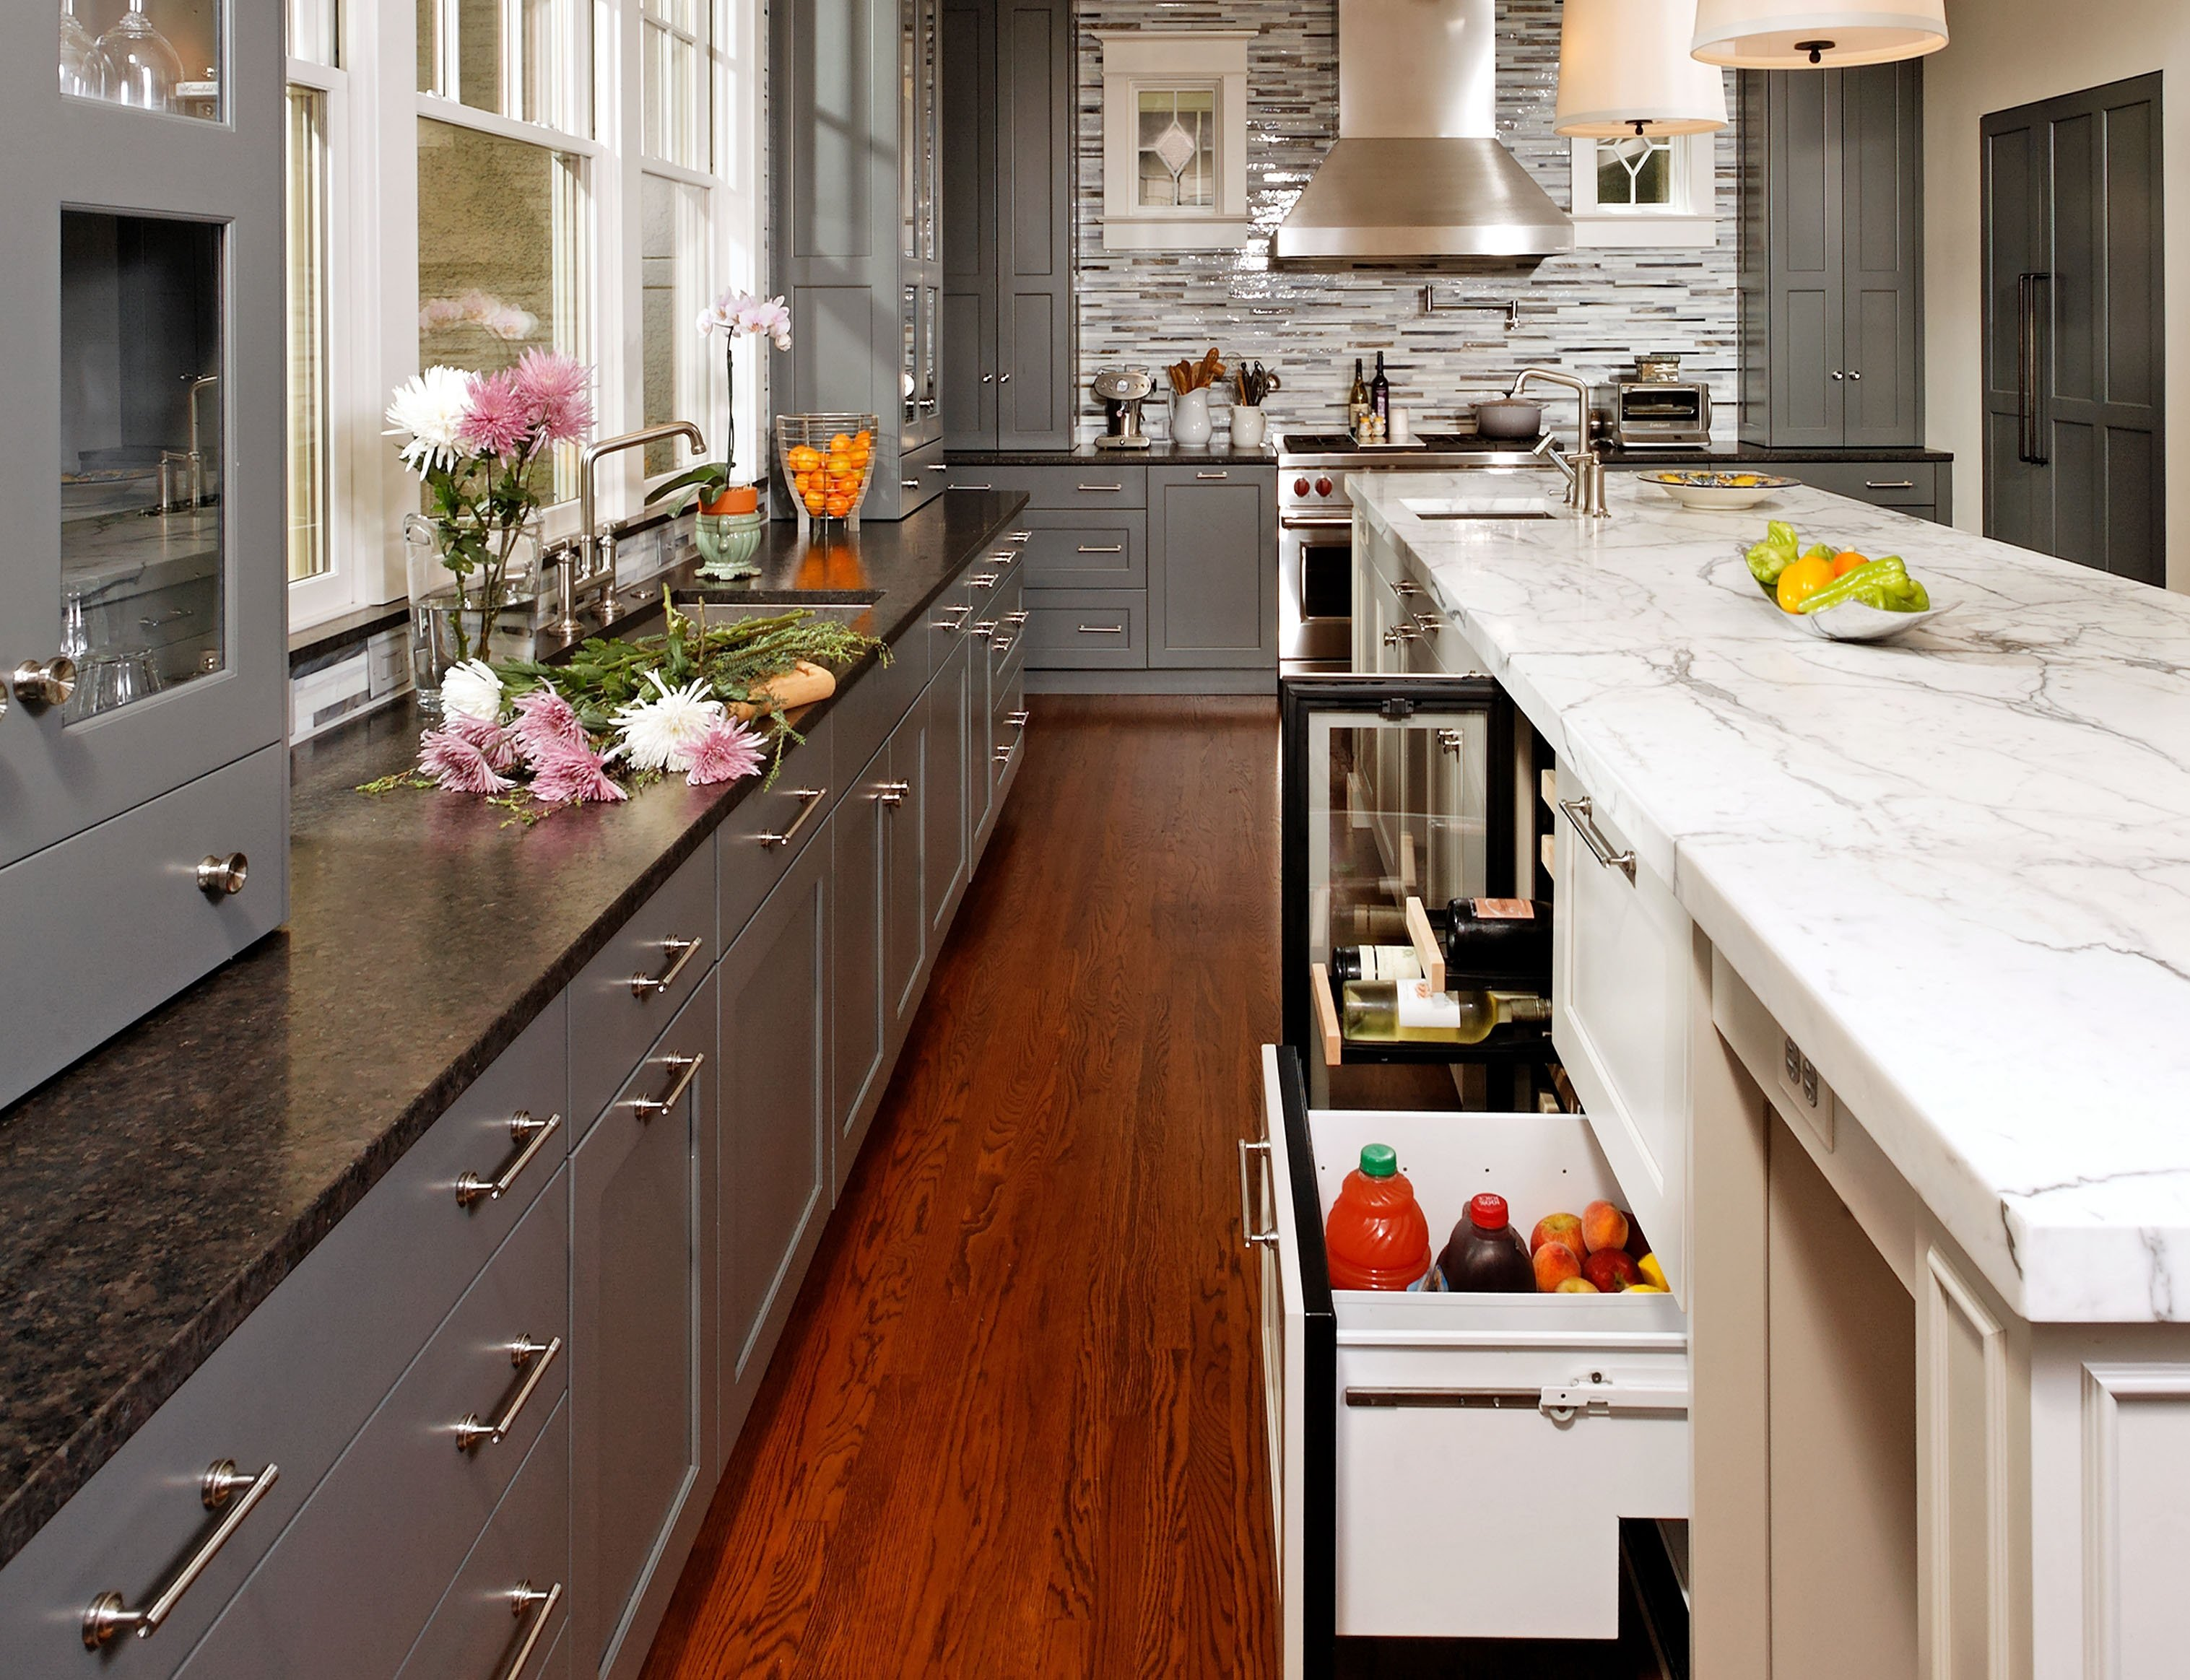 Lower Cabinetry and Storage